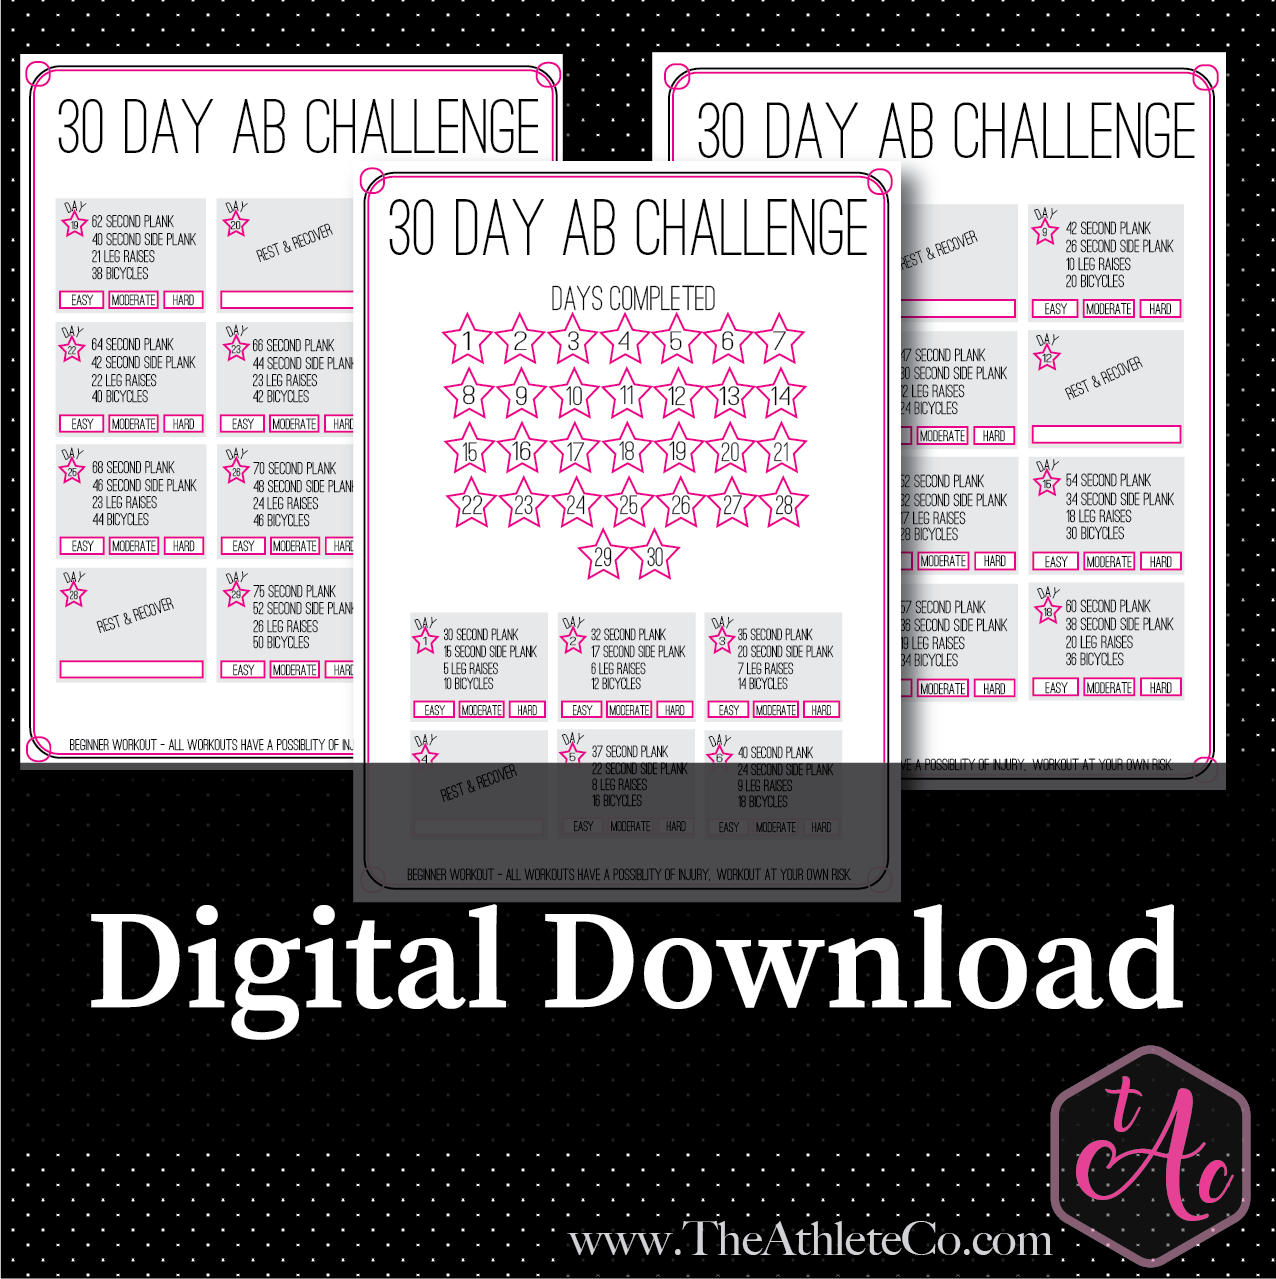 It's just an image of Printable 30 Day Ab Challenge pertaining to bicycle crunch